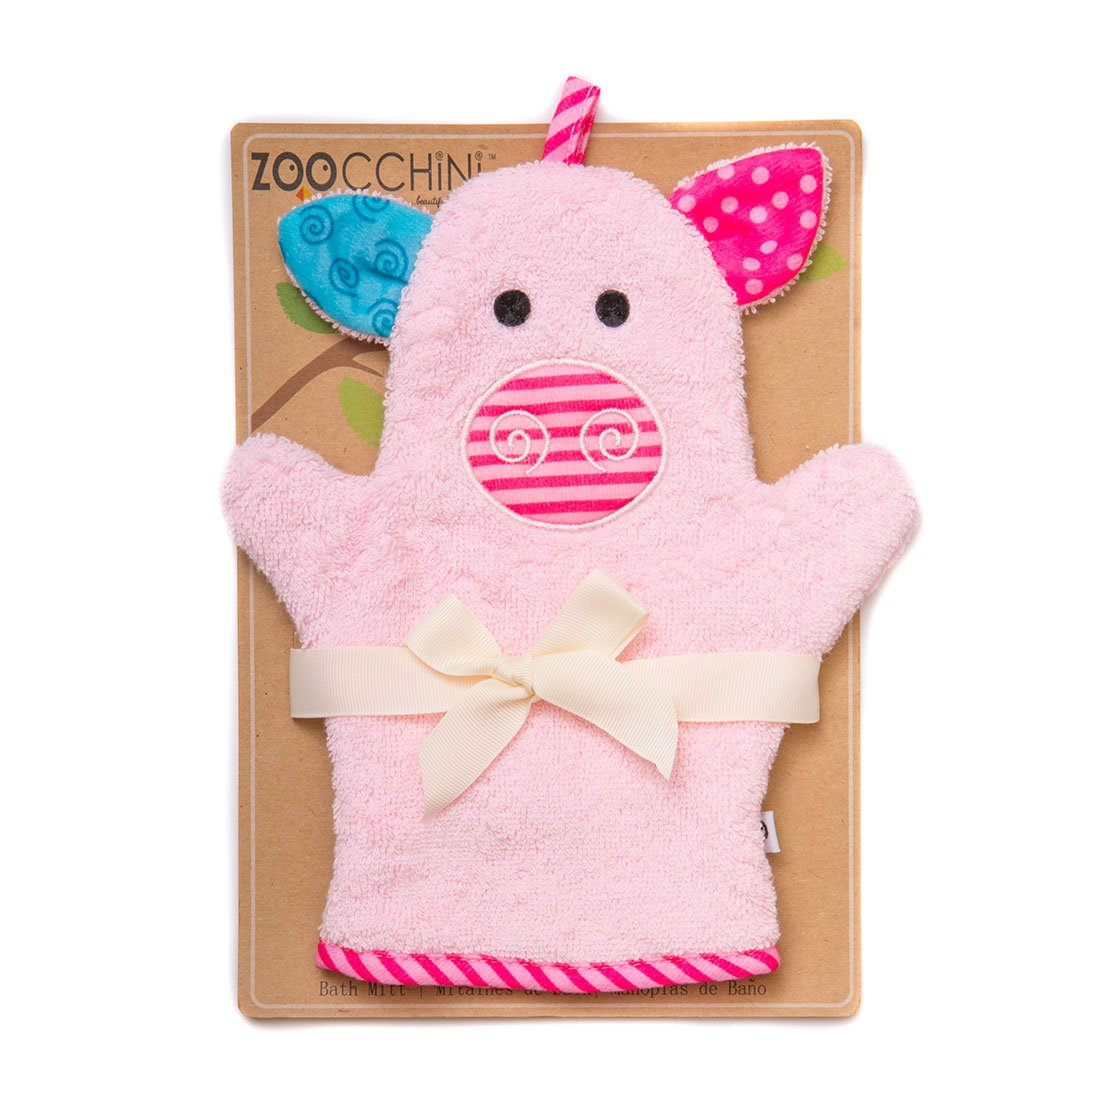 ZOOCCHINI Baby Snow Terry Bath Mitt - Pinky the Piglet